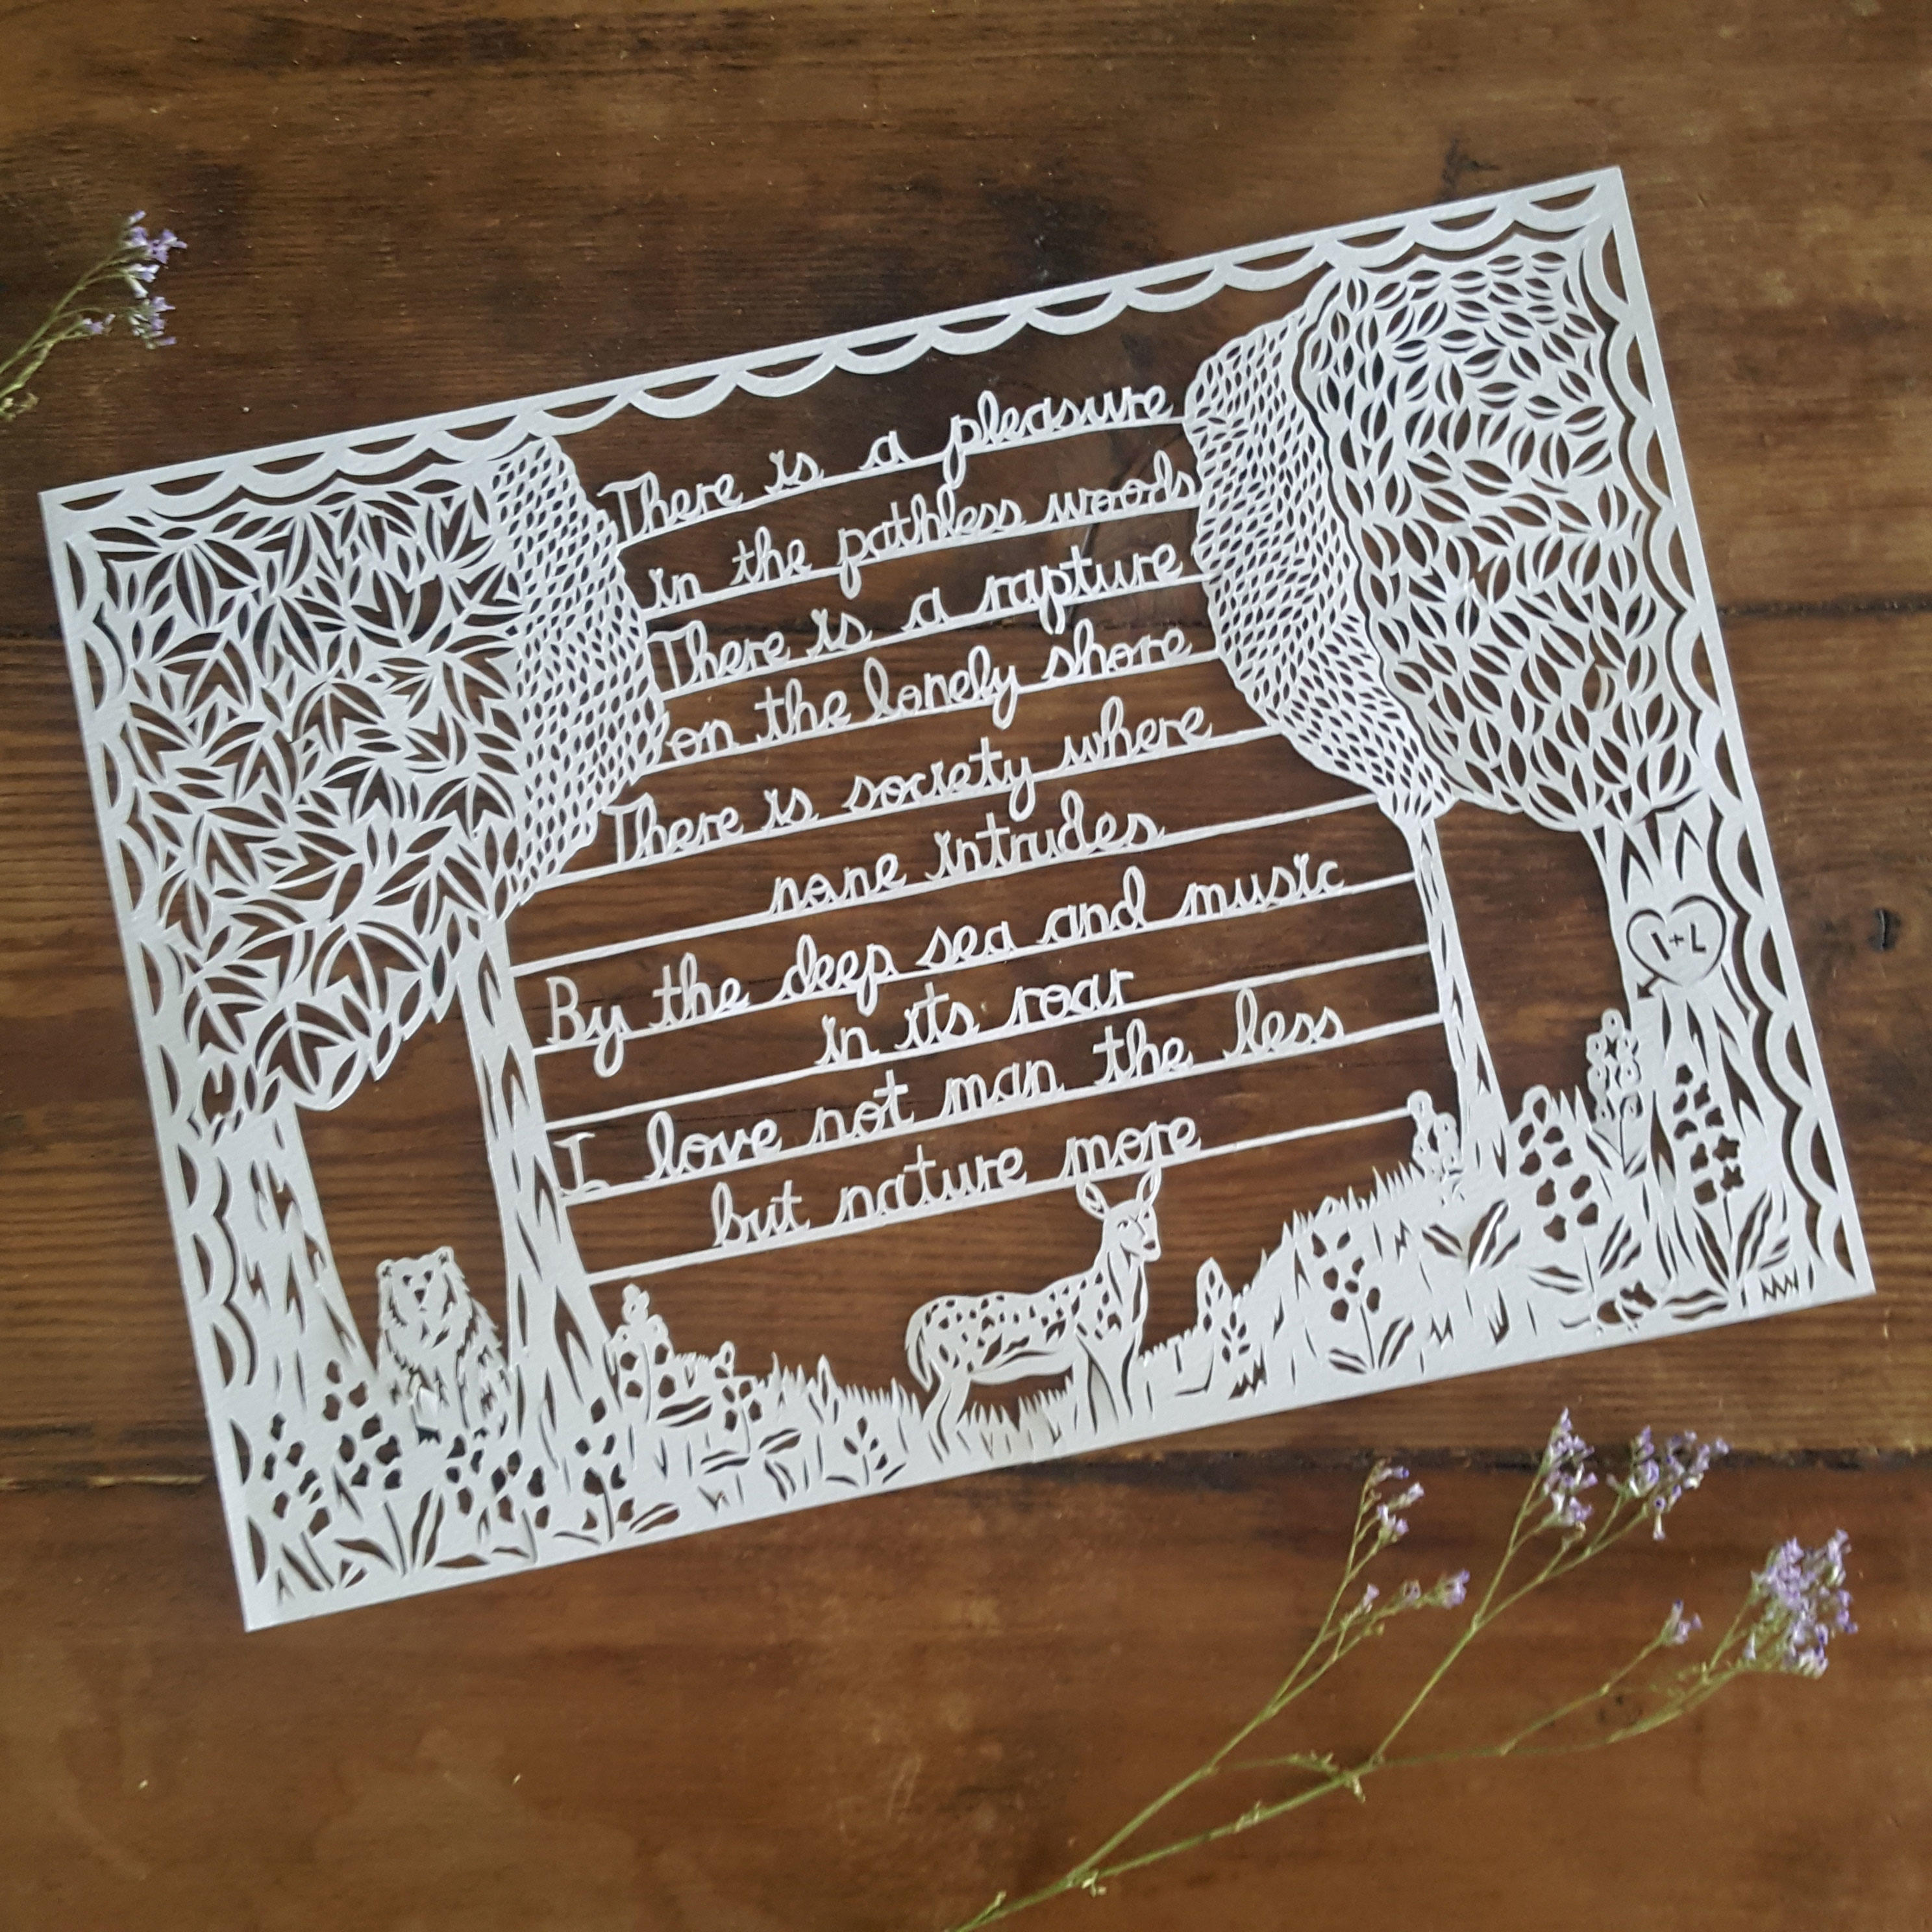 A hand drawn hand cut paper cut illustration telling a story, customised to the customer.